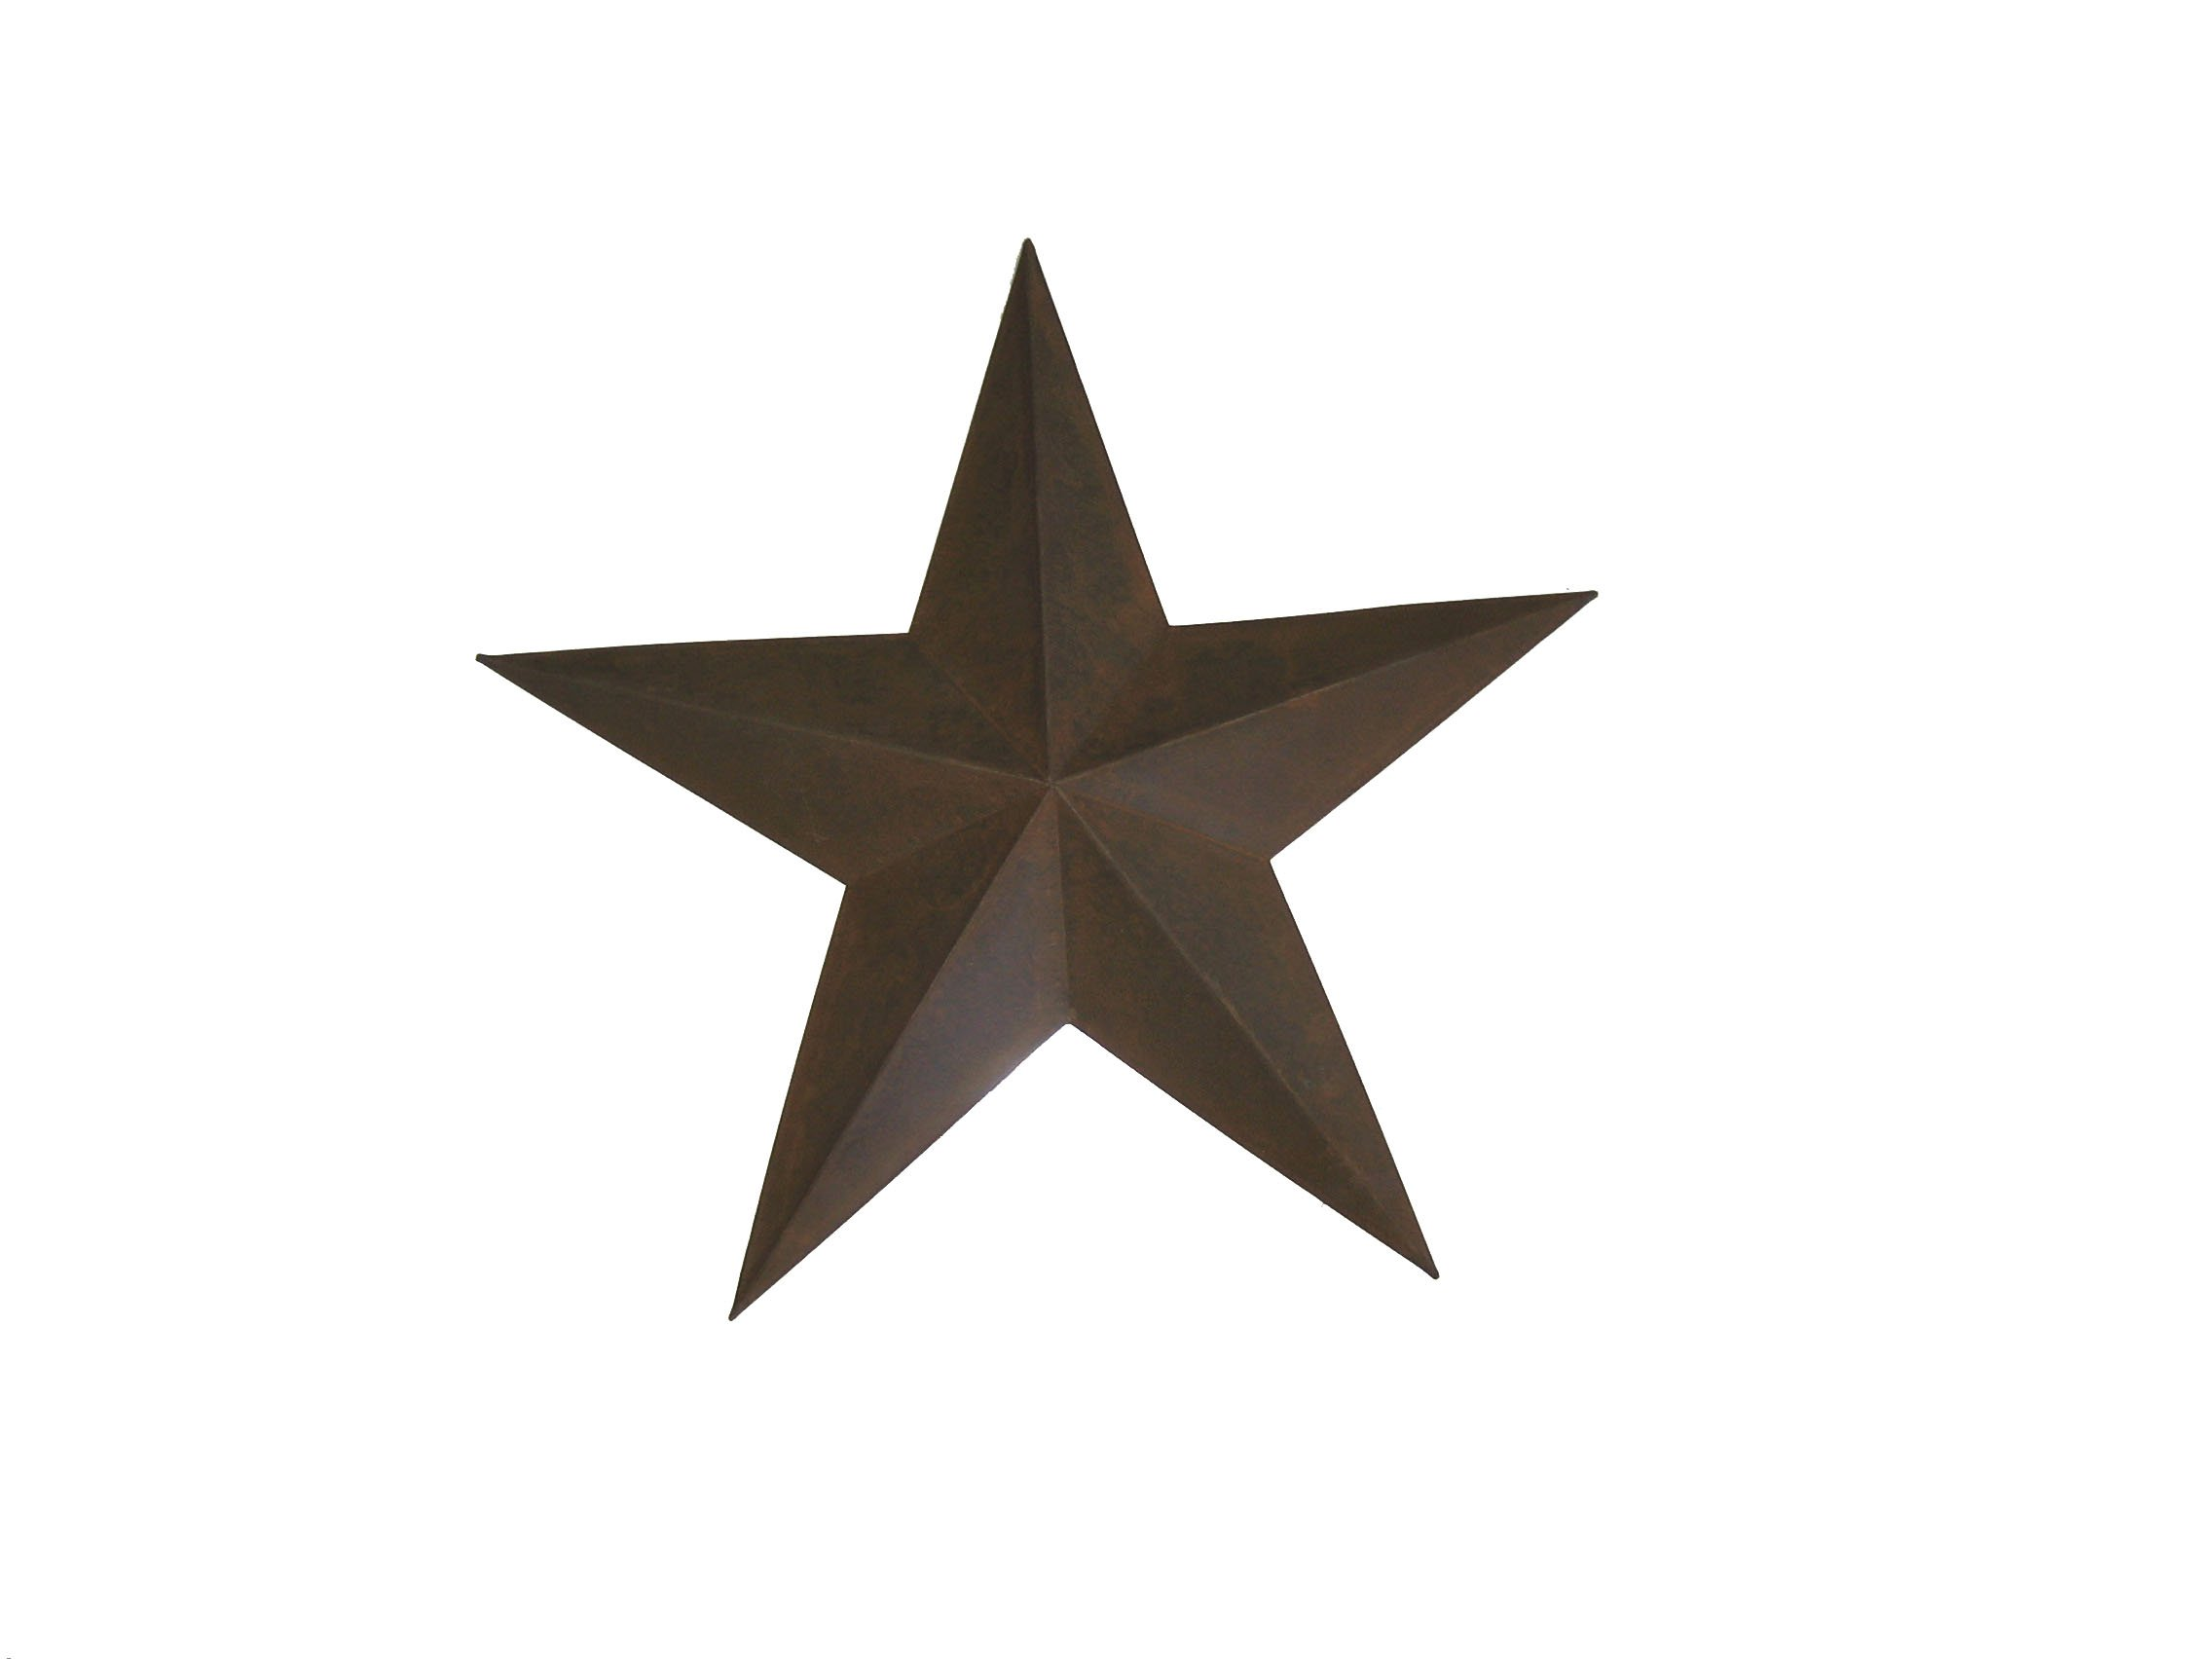 Craft Outlet Tin Star Wall Decor, 24-Inch, Rust by Craft Outlet Inc